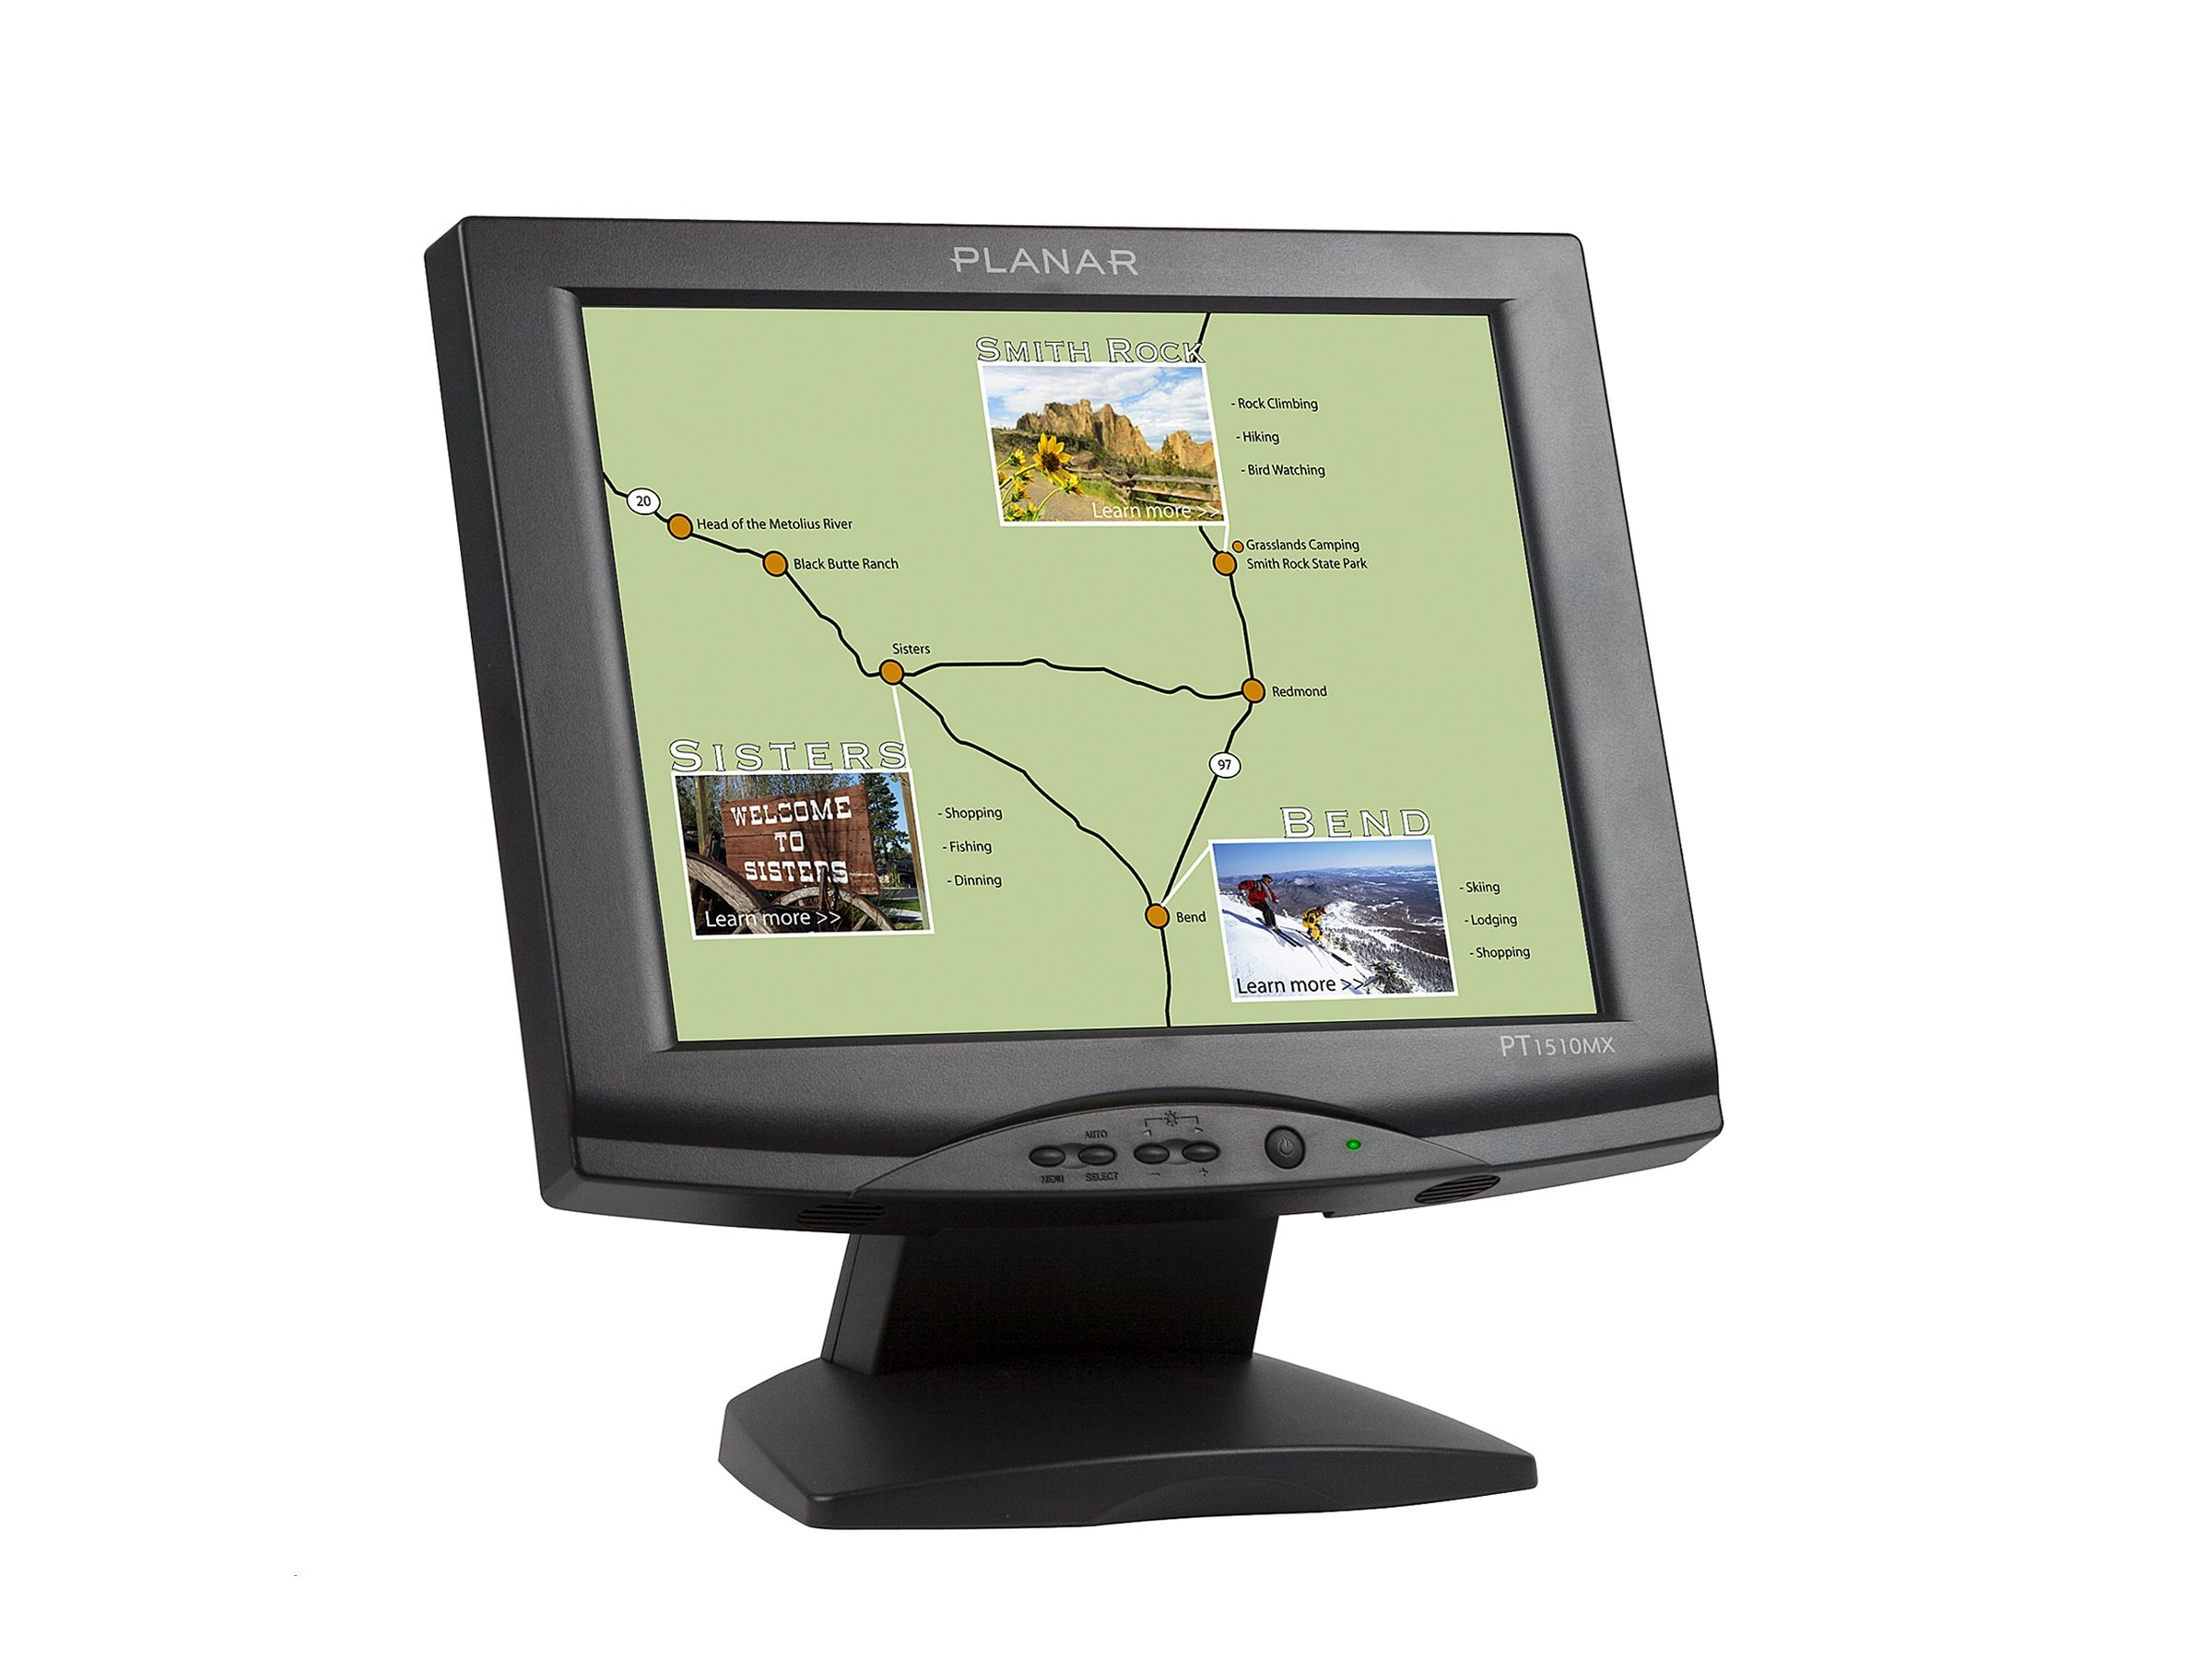 Planar 15 PT1510MX LCD Touchscreen Monitor with Speakers, Black, 997-3198-00